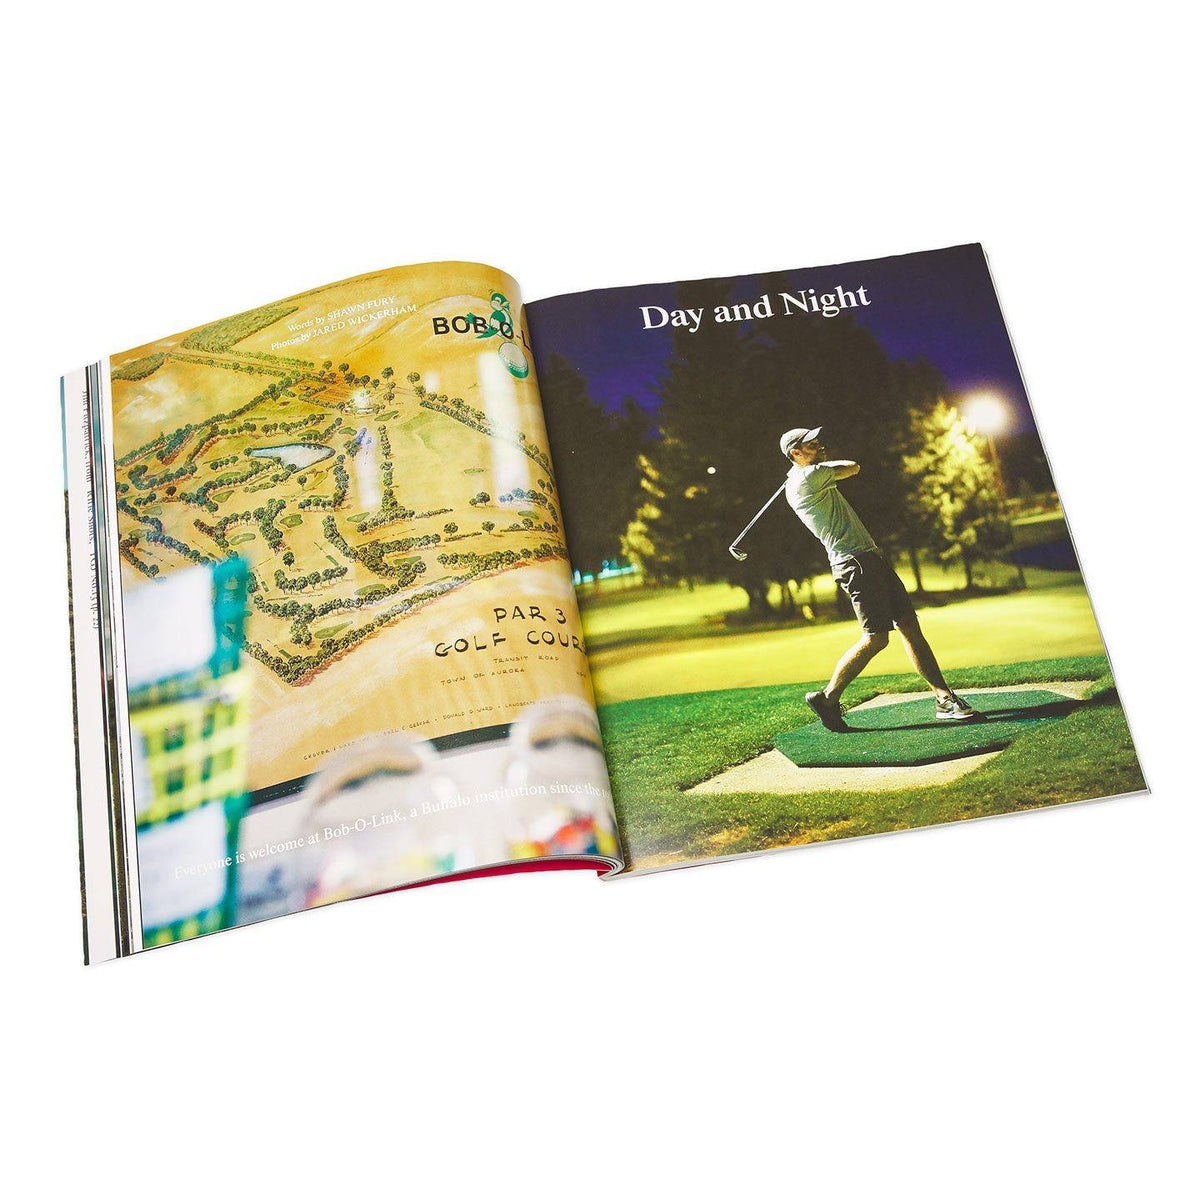 The Golfer's Journal #13